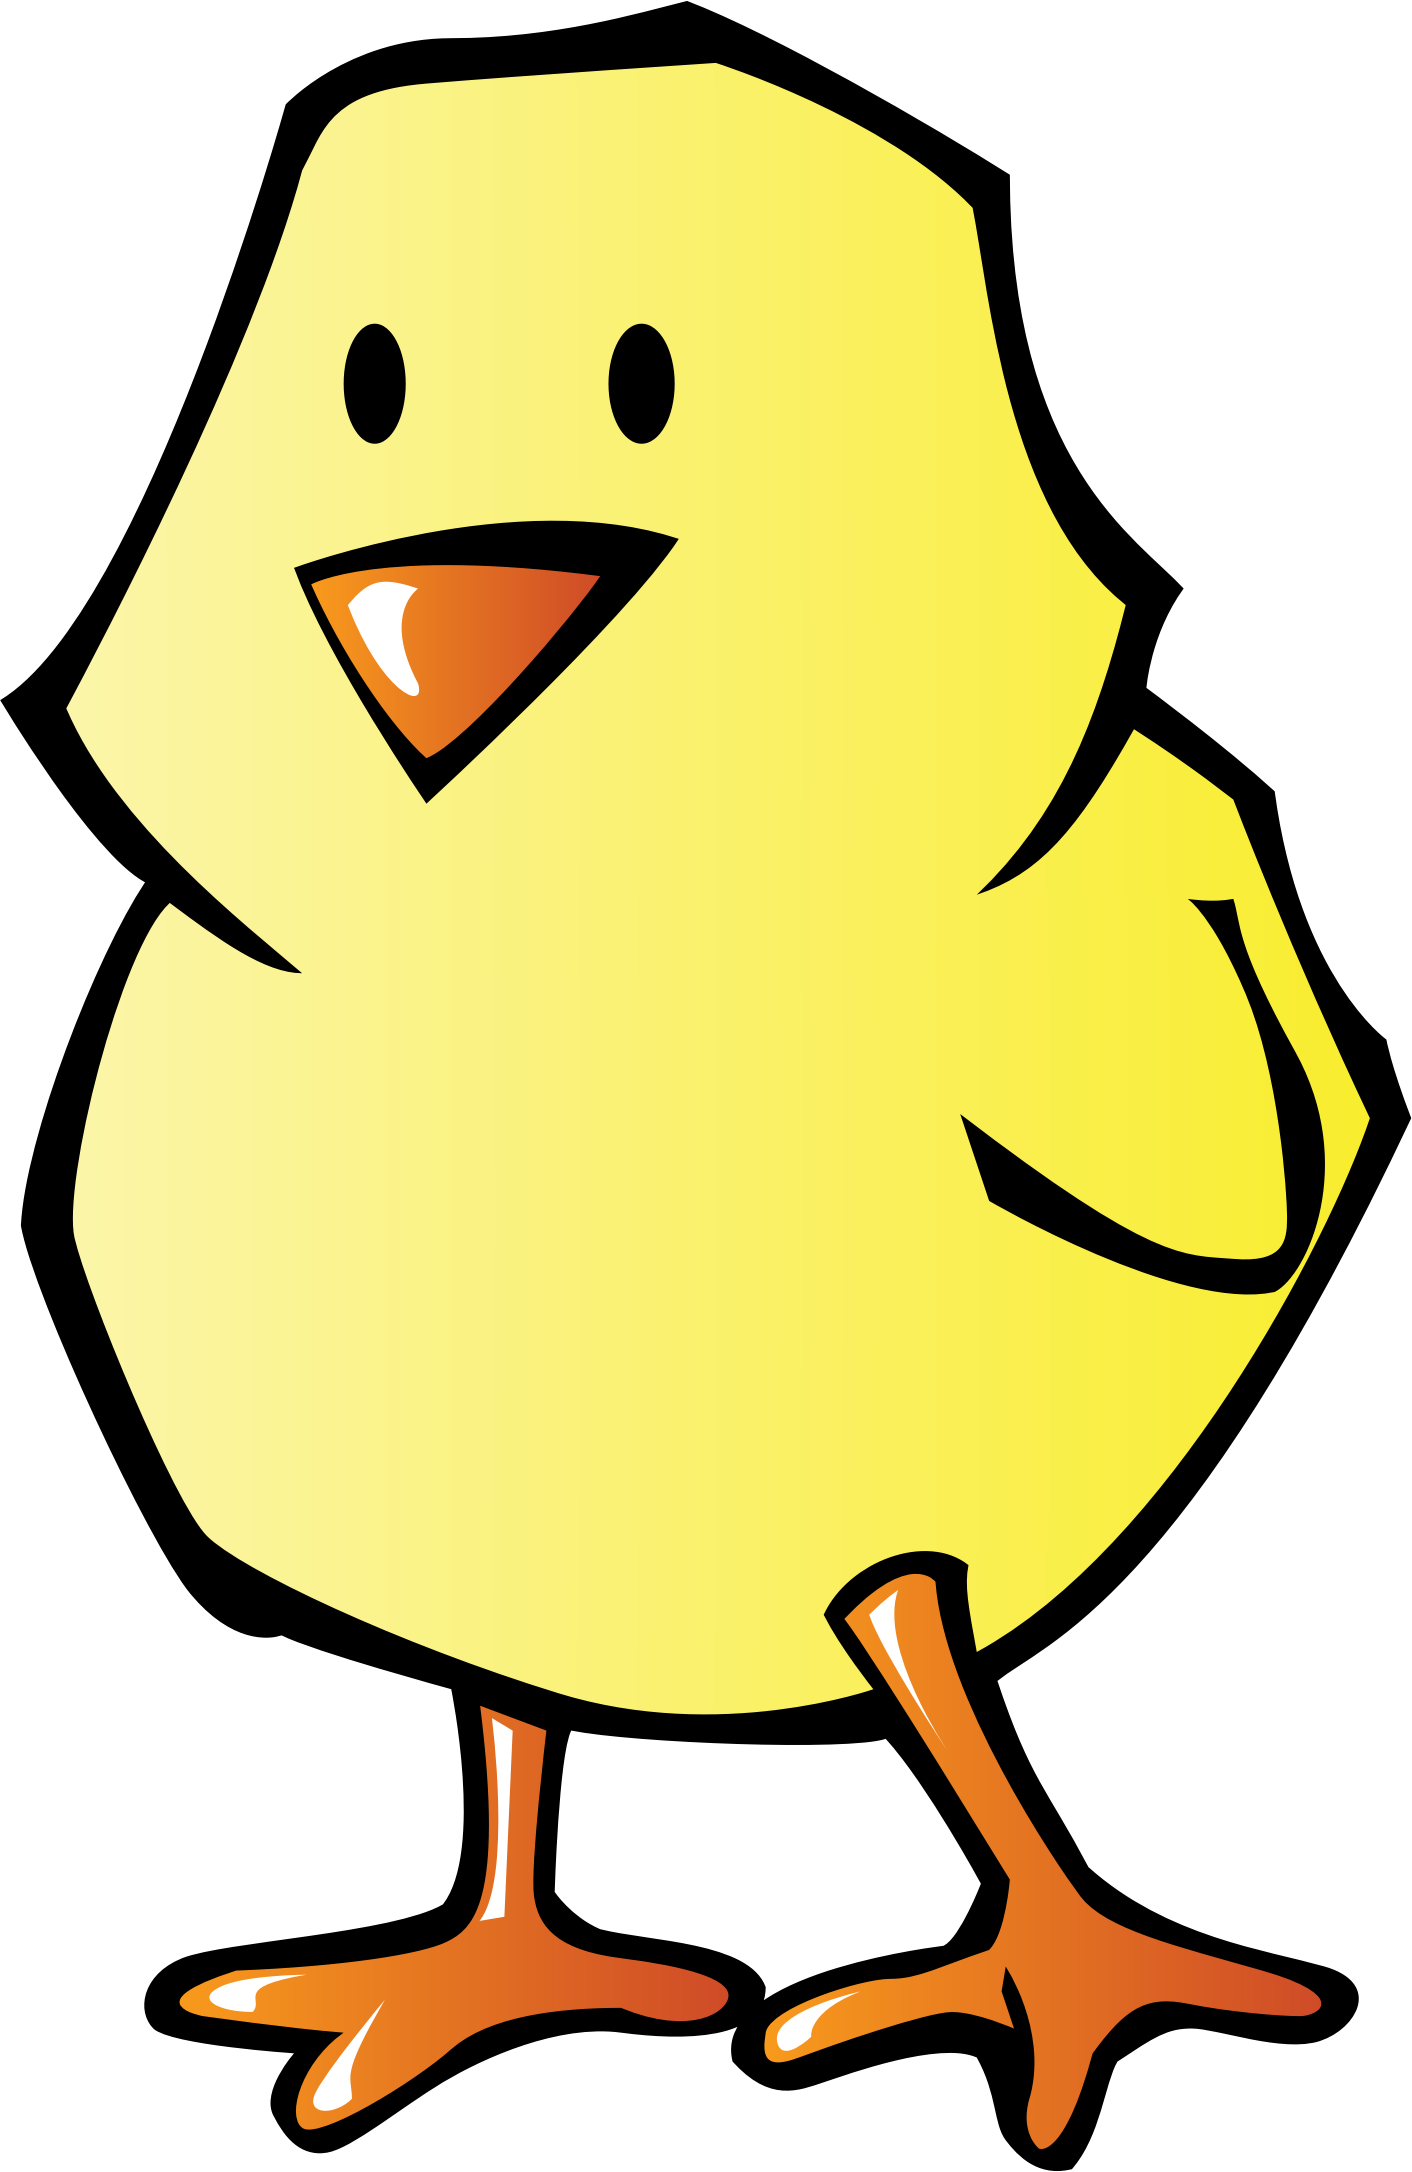 Animals clipart chicken. Chick big image png